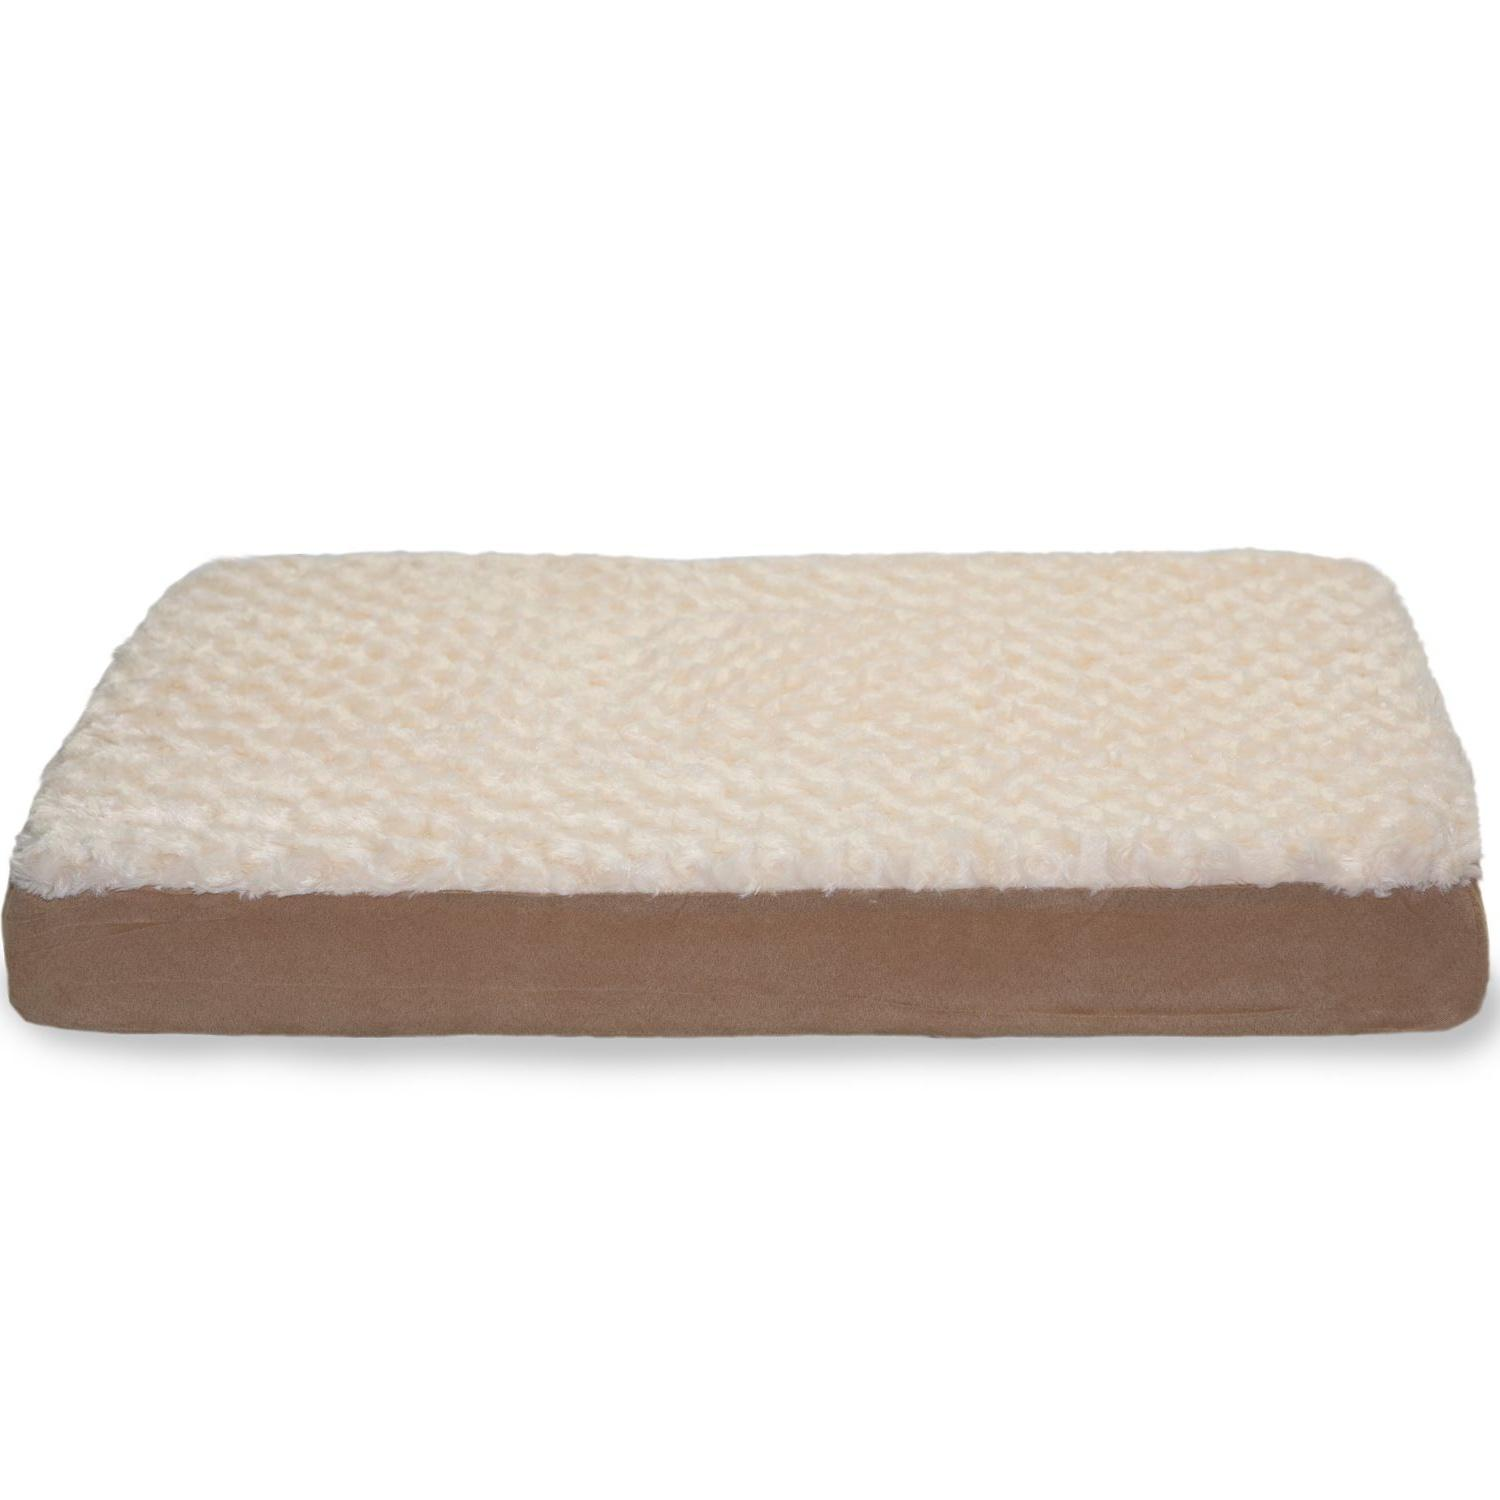 FurHaven Ultra Plush Deluxe Orthopedic Pet Bed - Cream